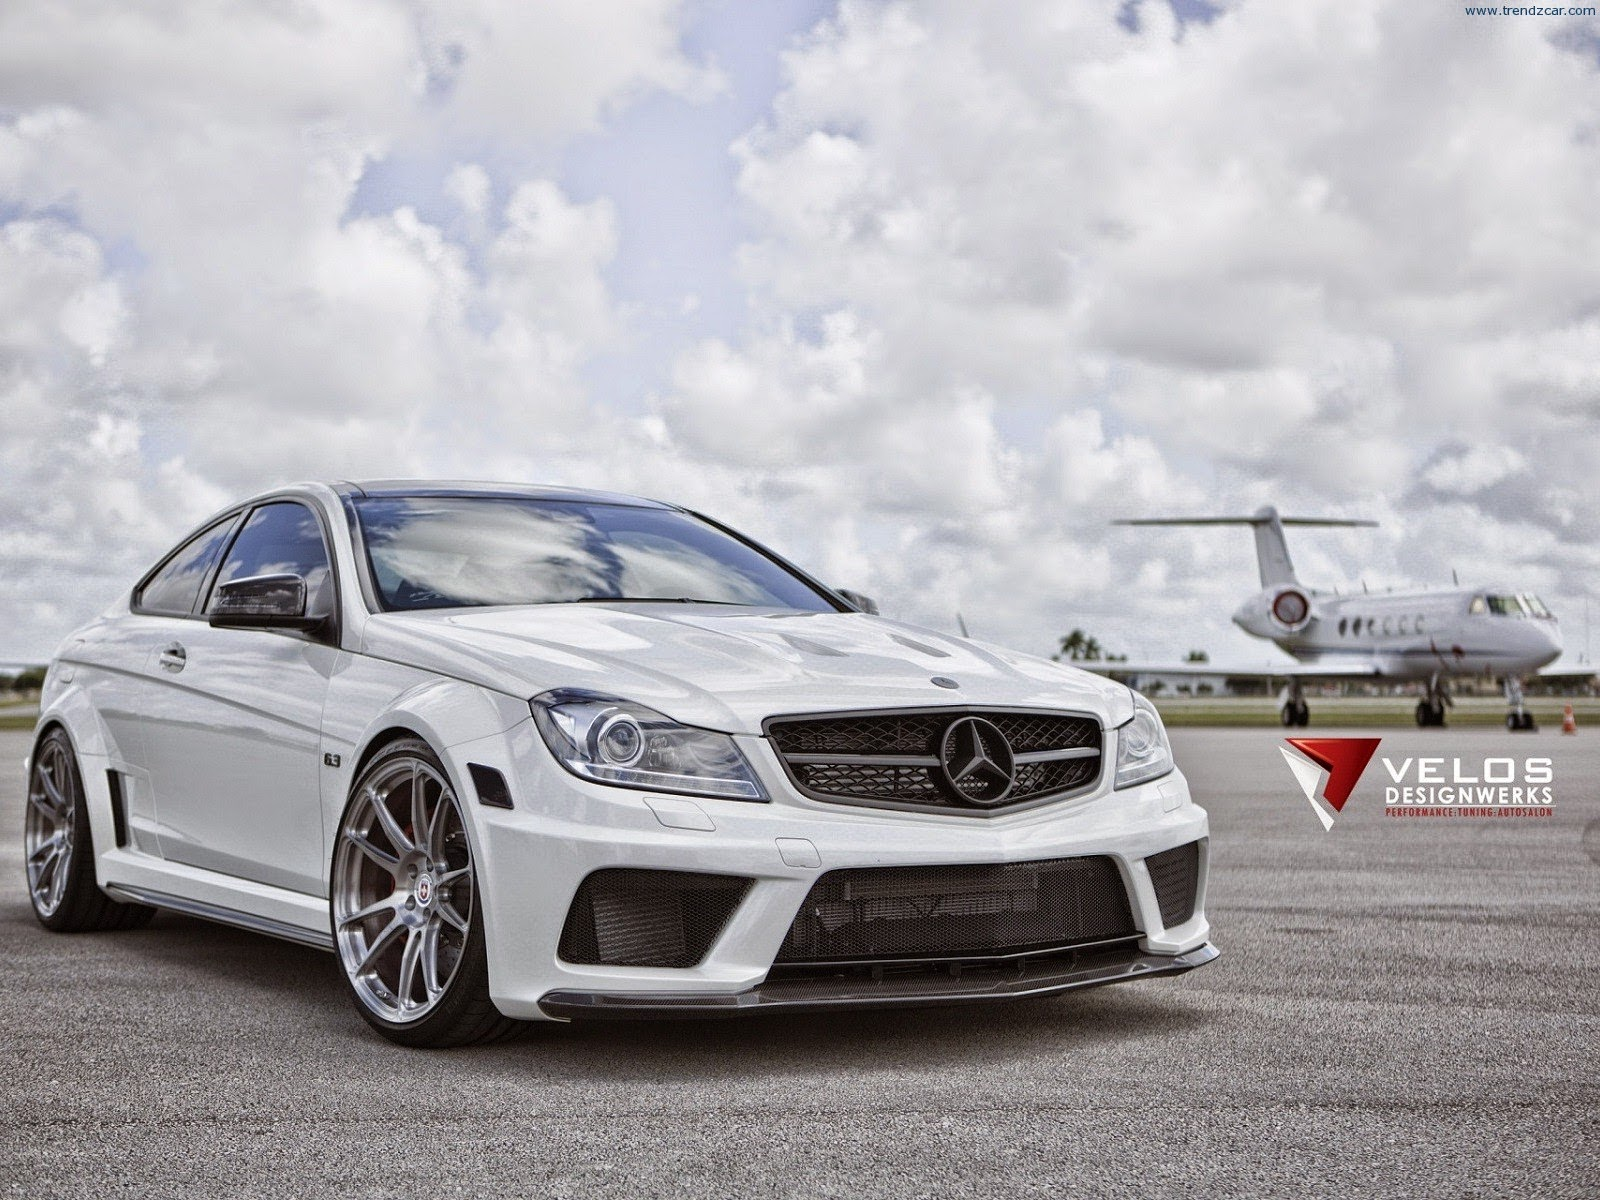 Mercedes benz c63 amg coupe black series for sale for Mercedes benz c63 amg black series for sale